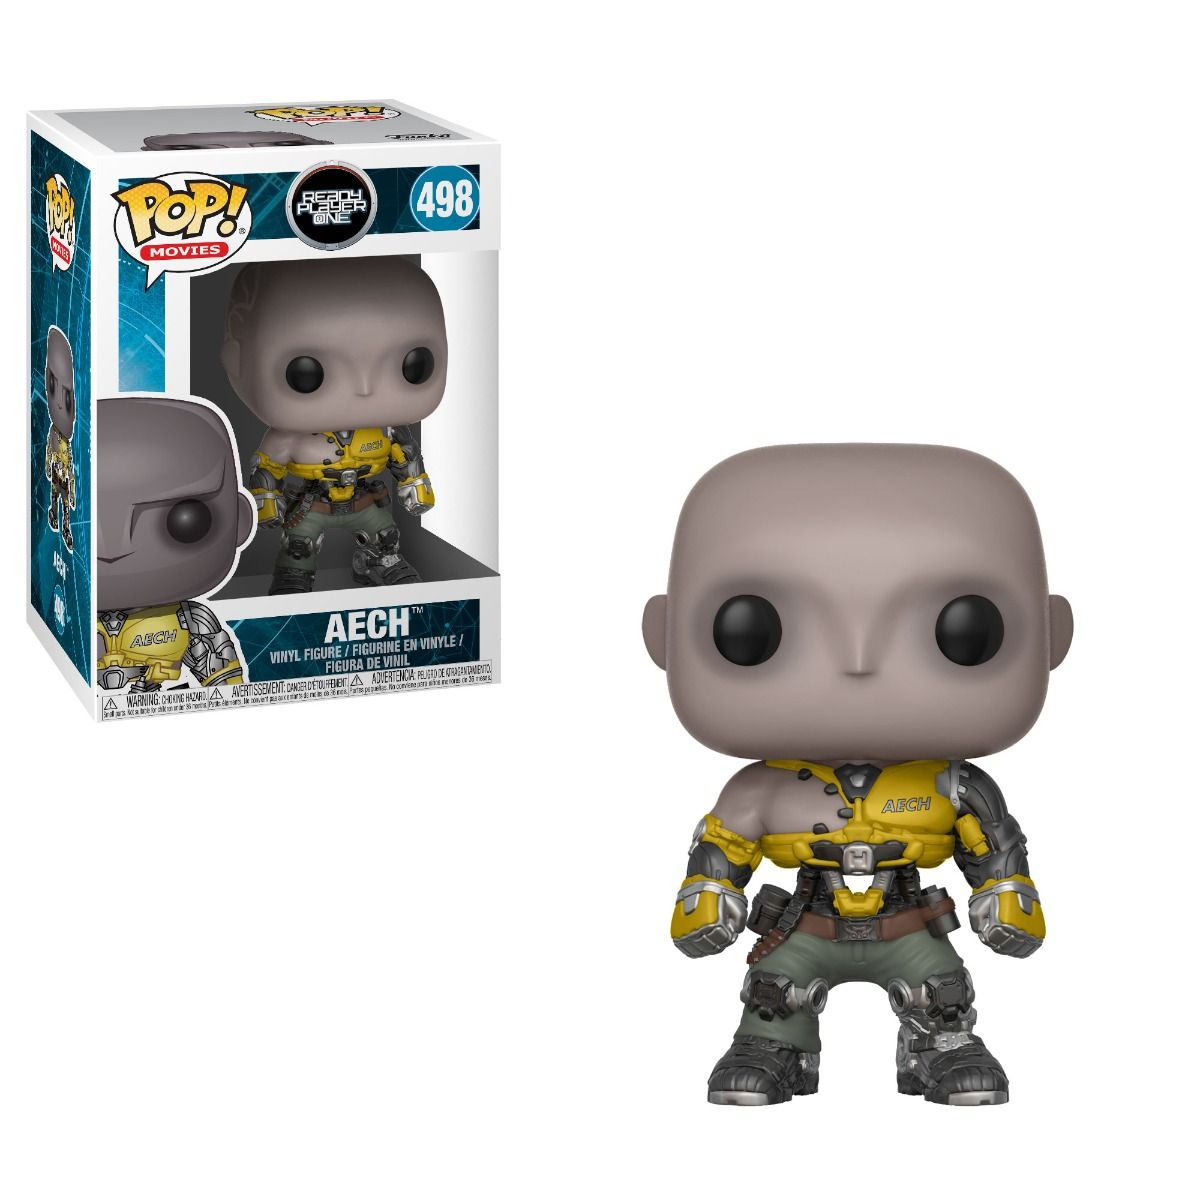 Funko POP! - Ready Player One: Aech #498